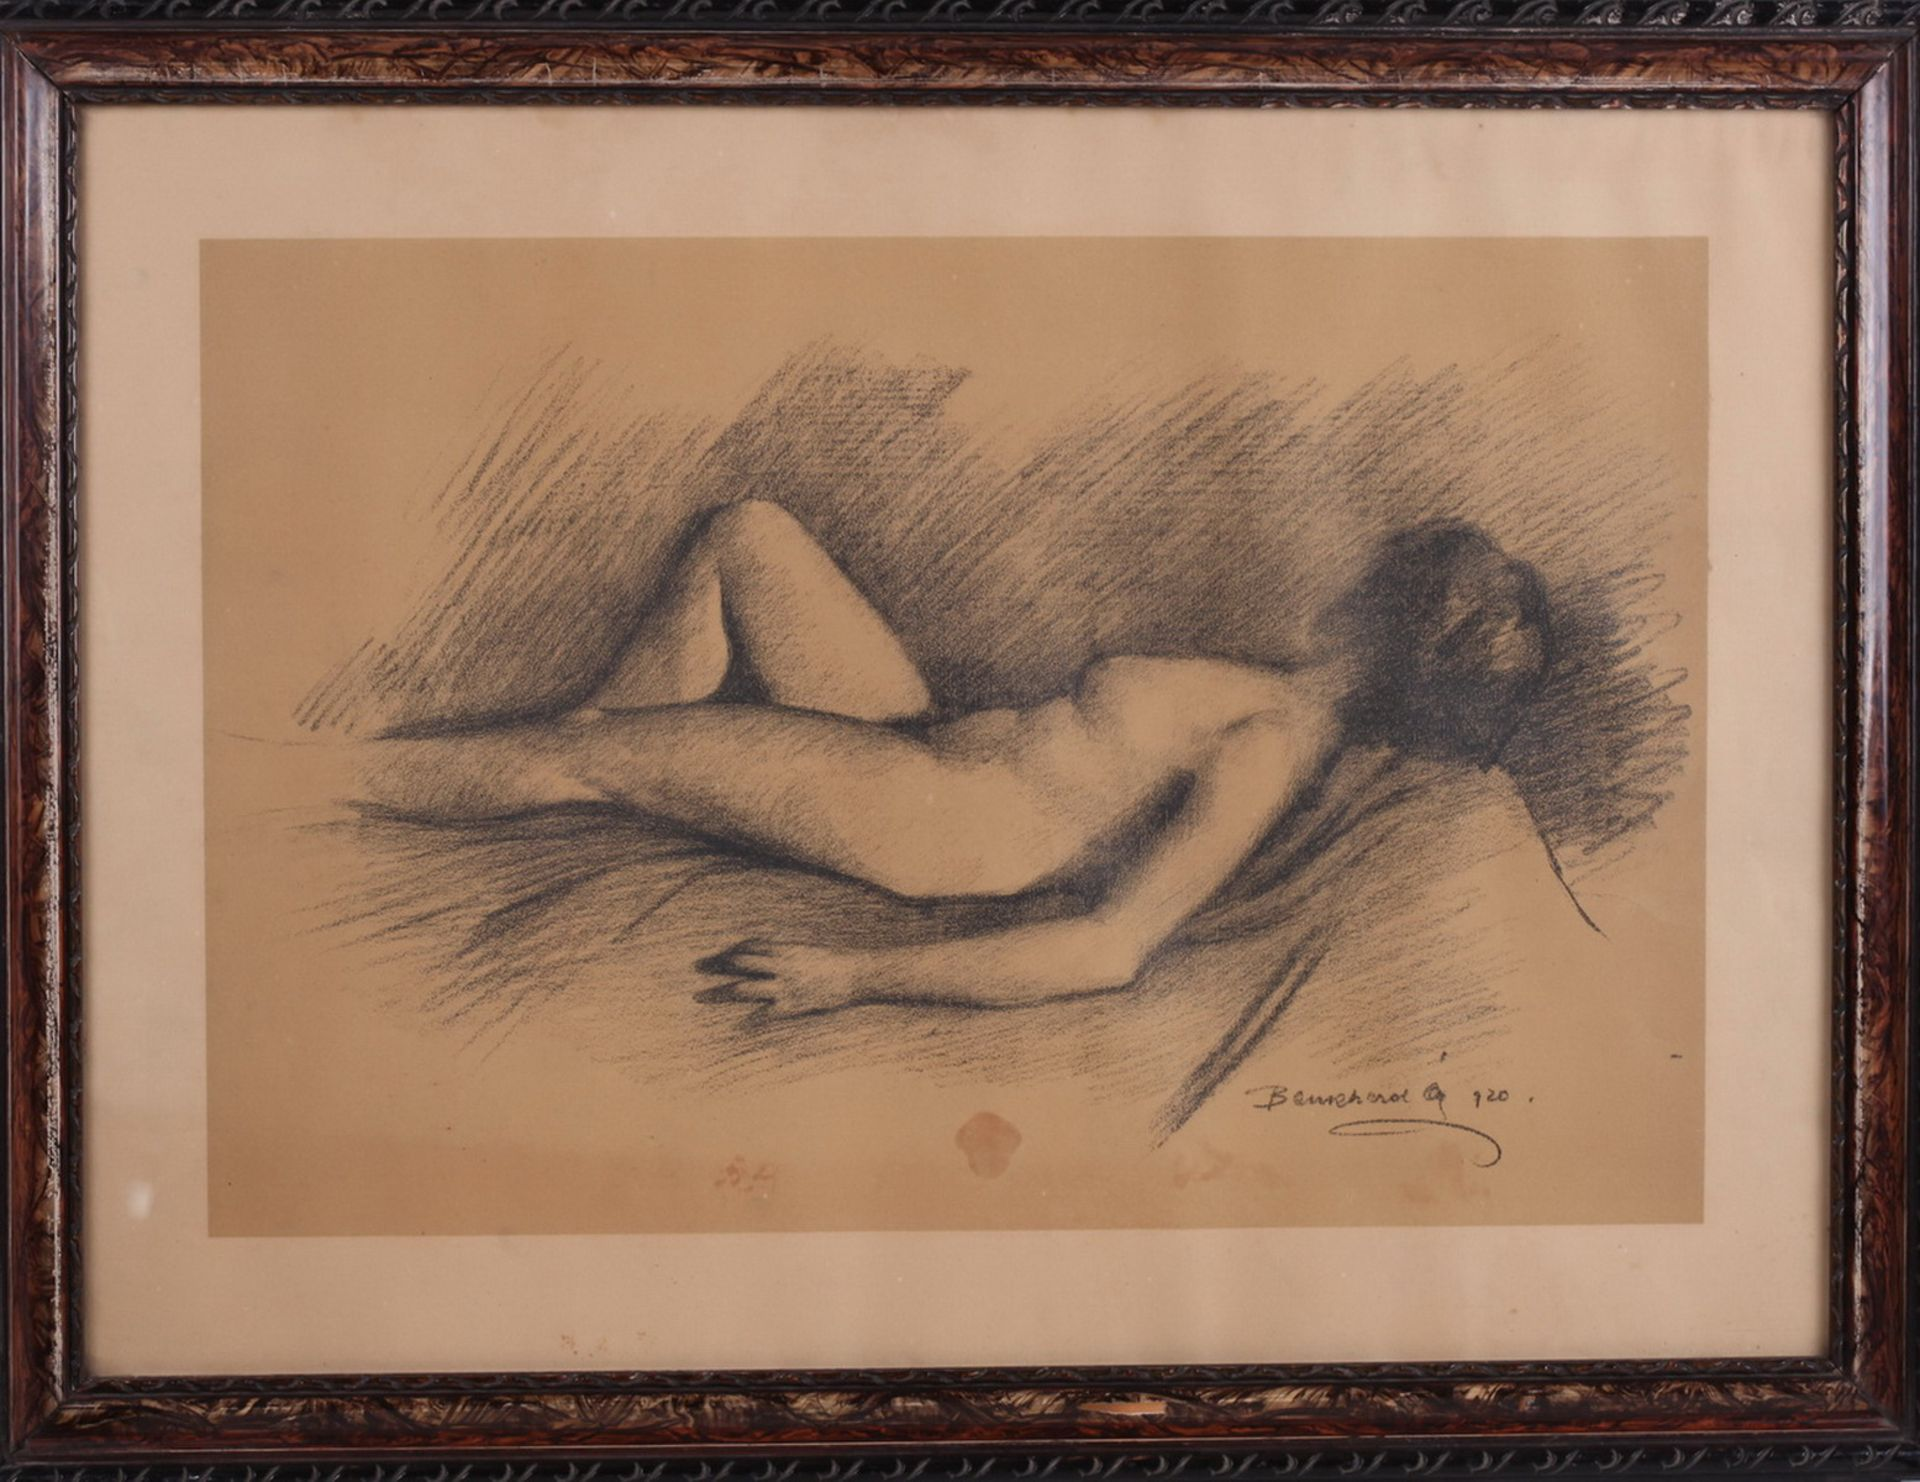 Unknown artist. Lying nude. <br>Signed and framed.1920. Paper, charcoal-pencil. 42,5x58,5 cm. - Bild 3 aus 4